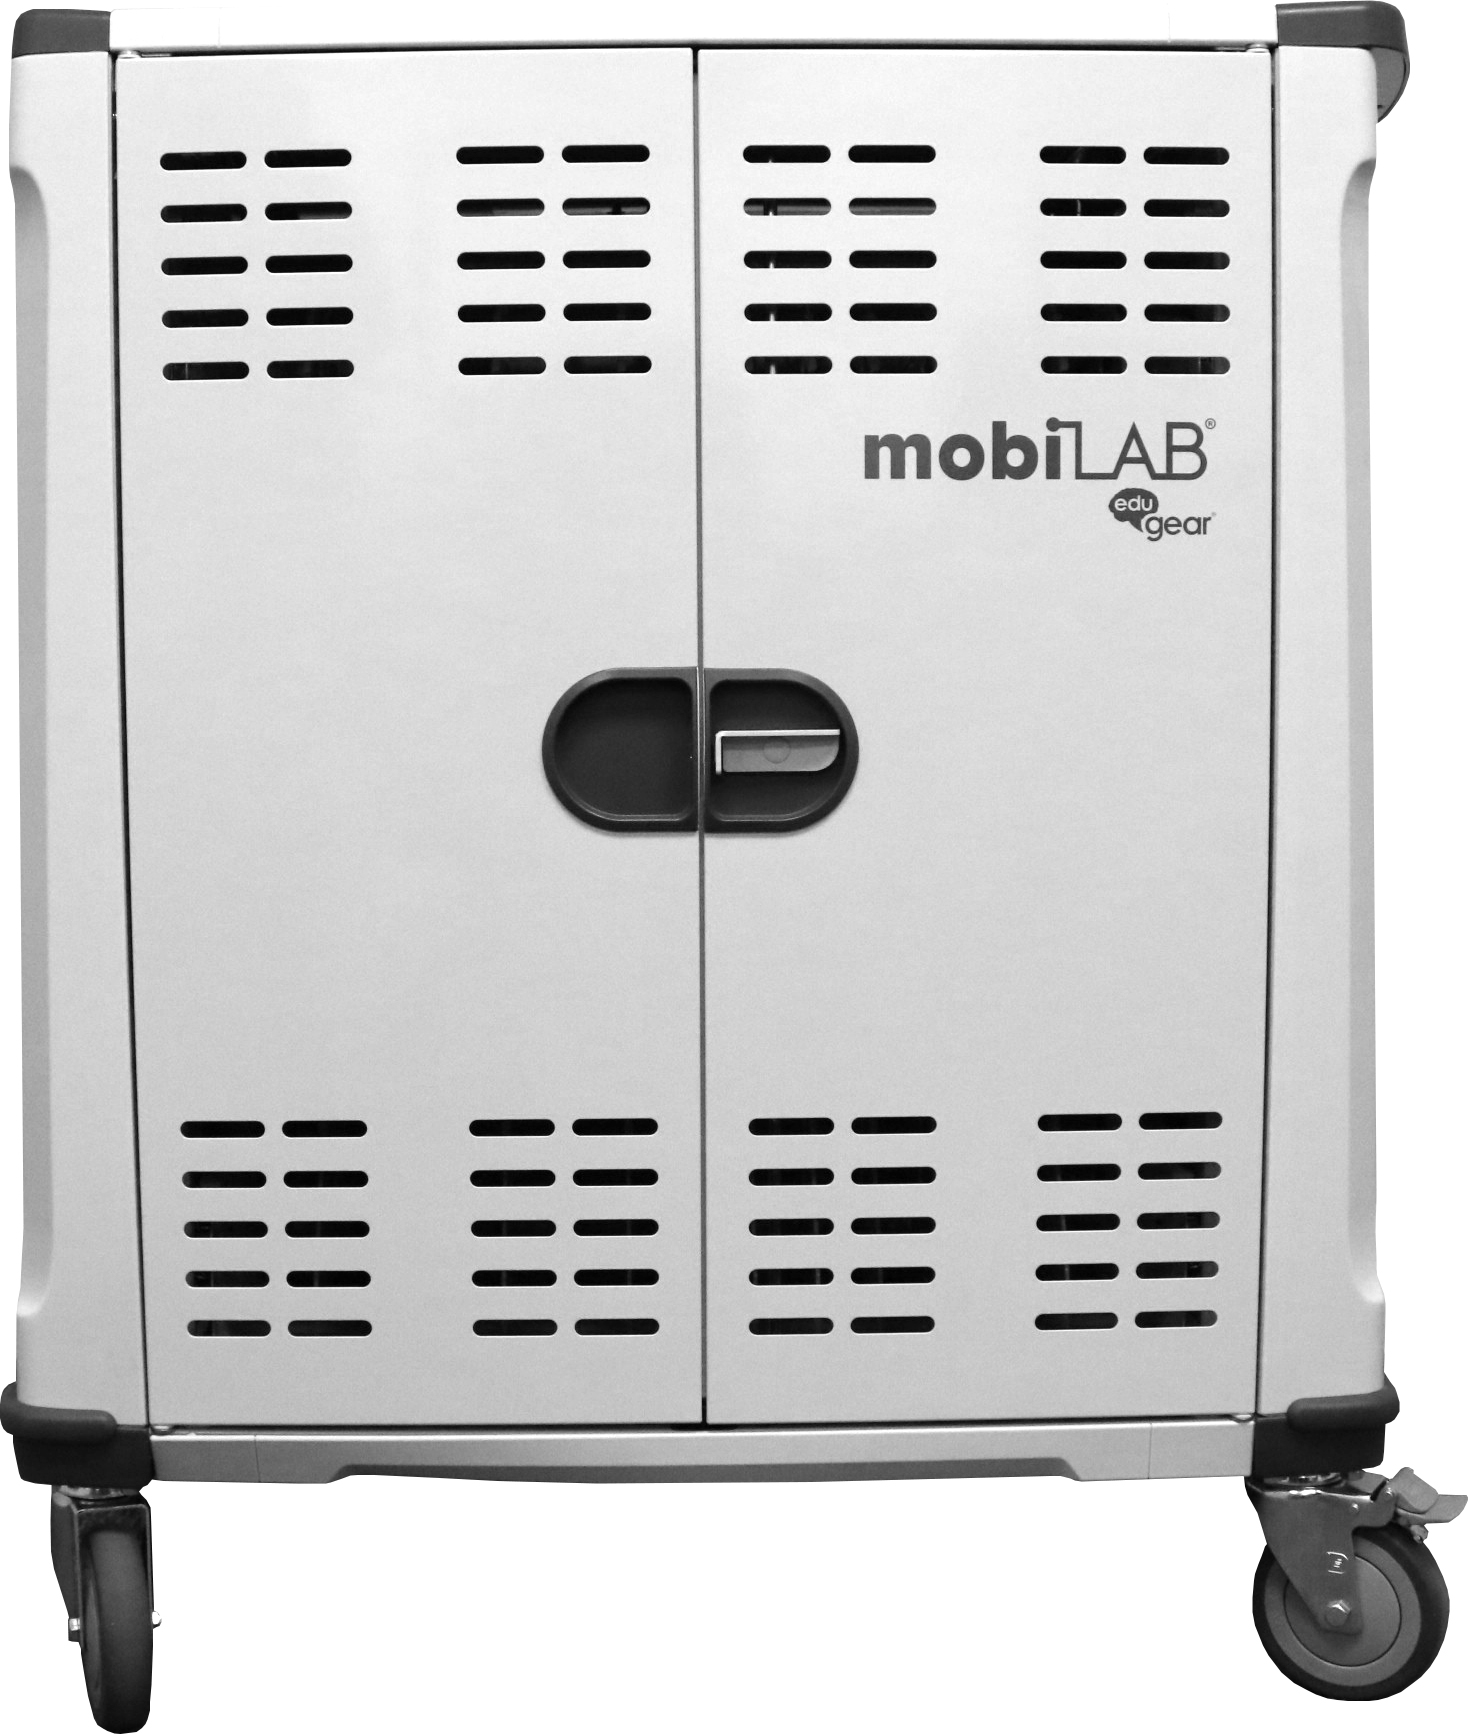 mobiLAB_MN142VS_Front1 CDI Announces New 42-Device Charging Cart – The MN142VS mobiLAB® charging cart by eduGear®